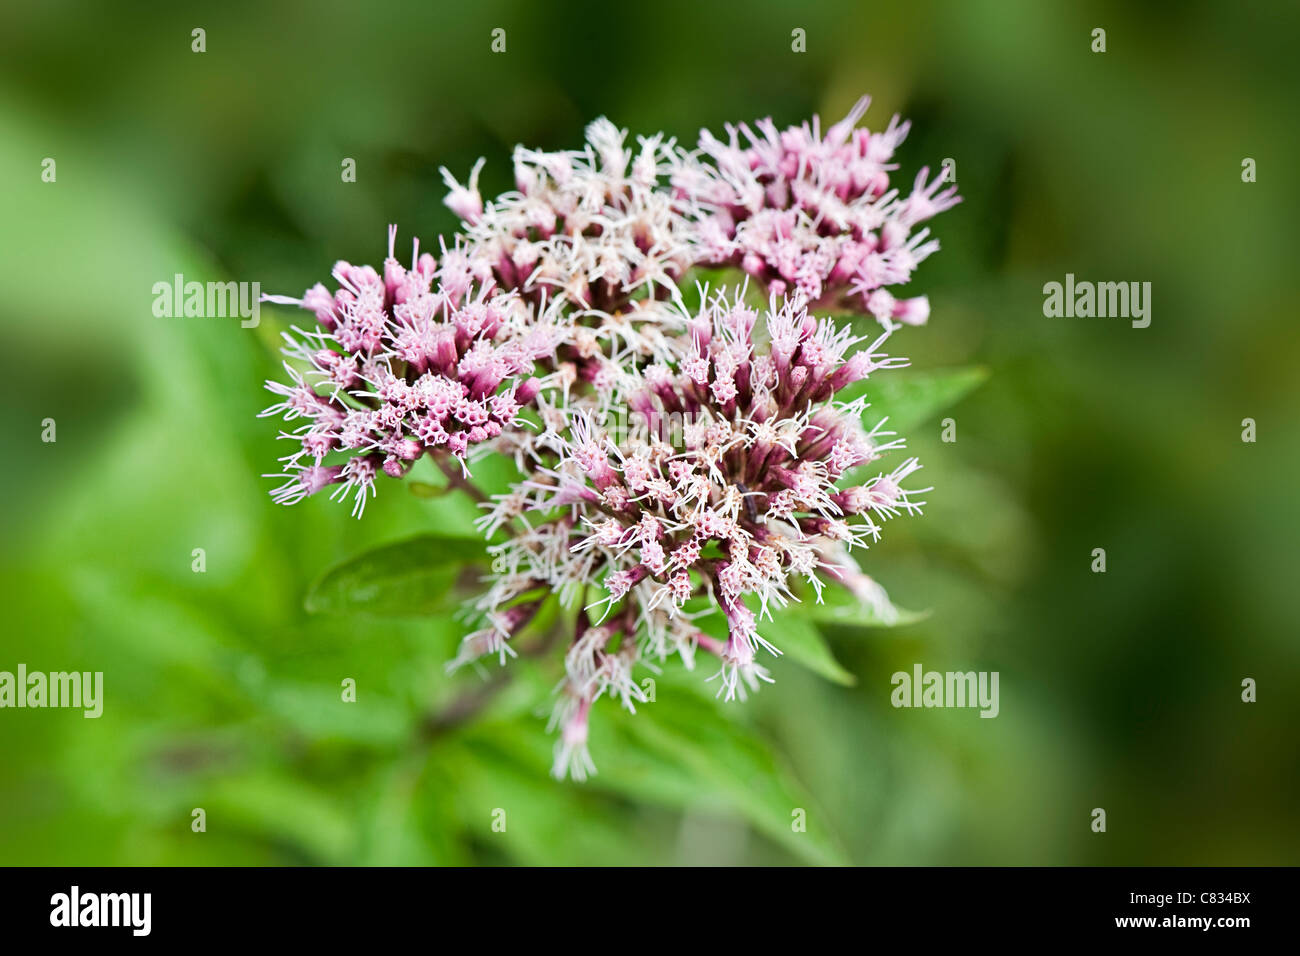 Close-up, macro image of the delicate pink flowers of Eupatorium cannabinum commonly known as Hemp Agrimony or holy - Stock Image